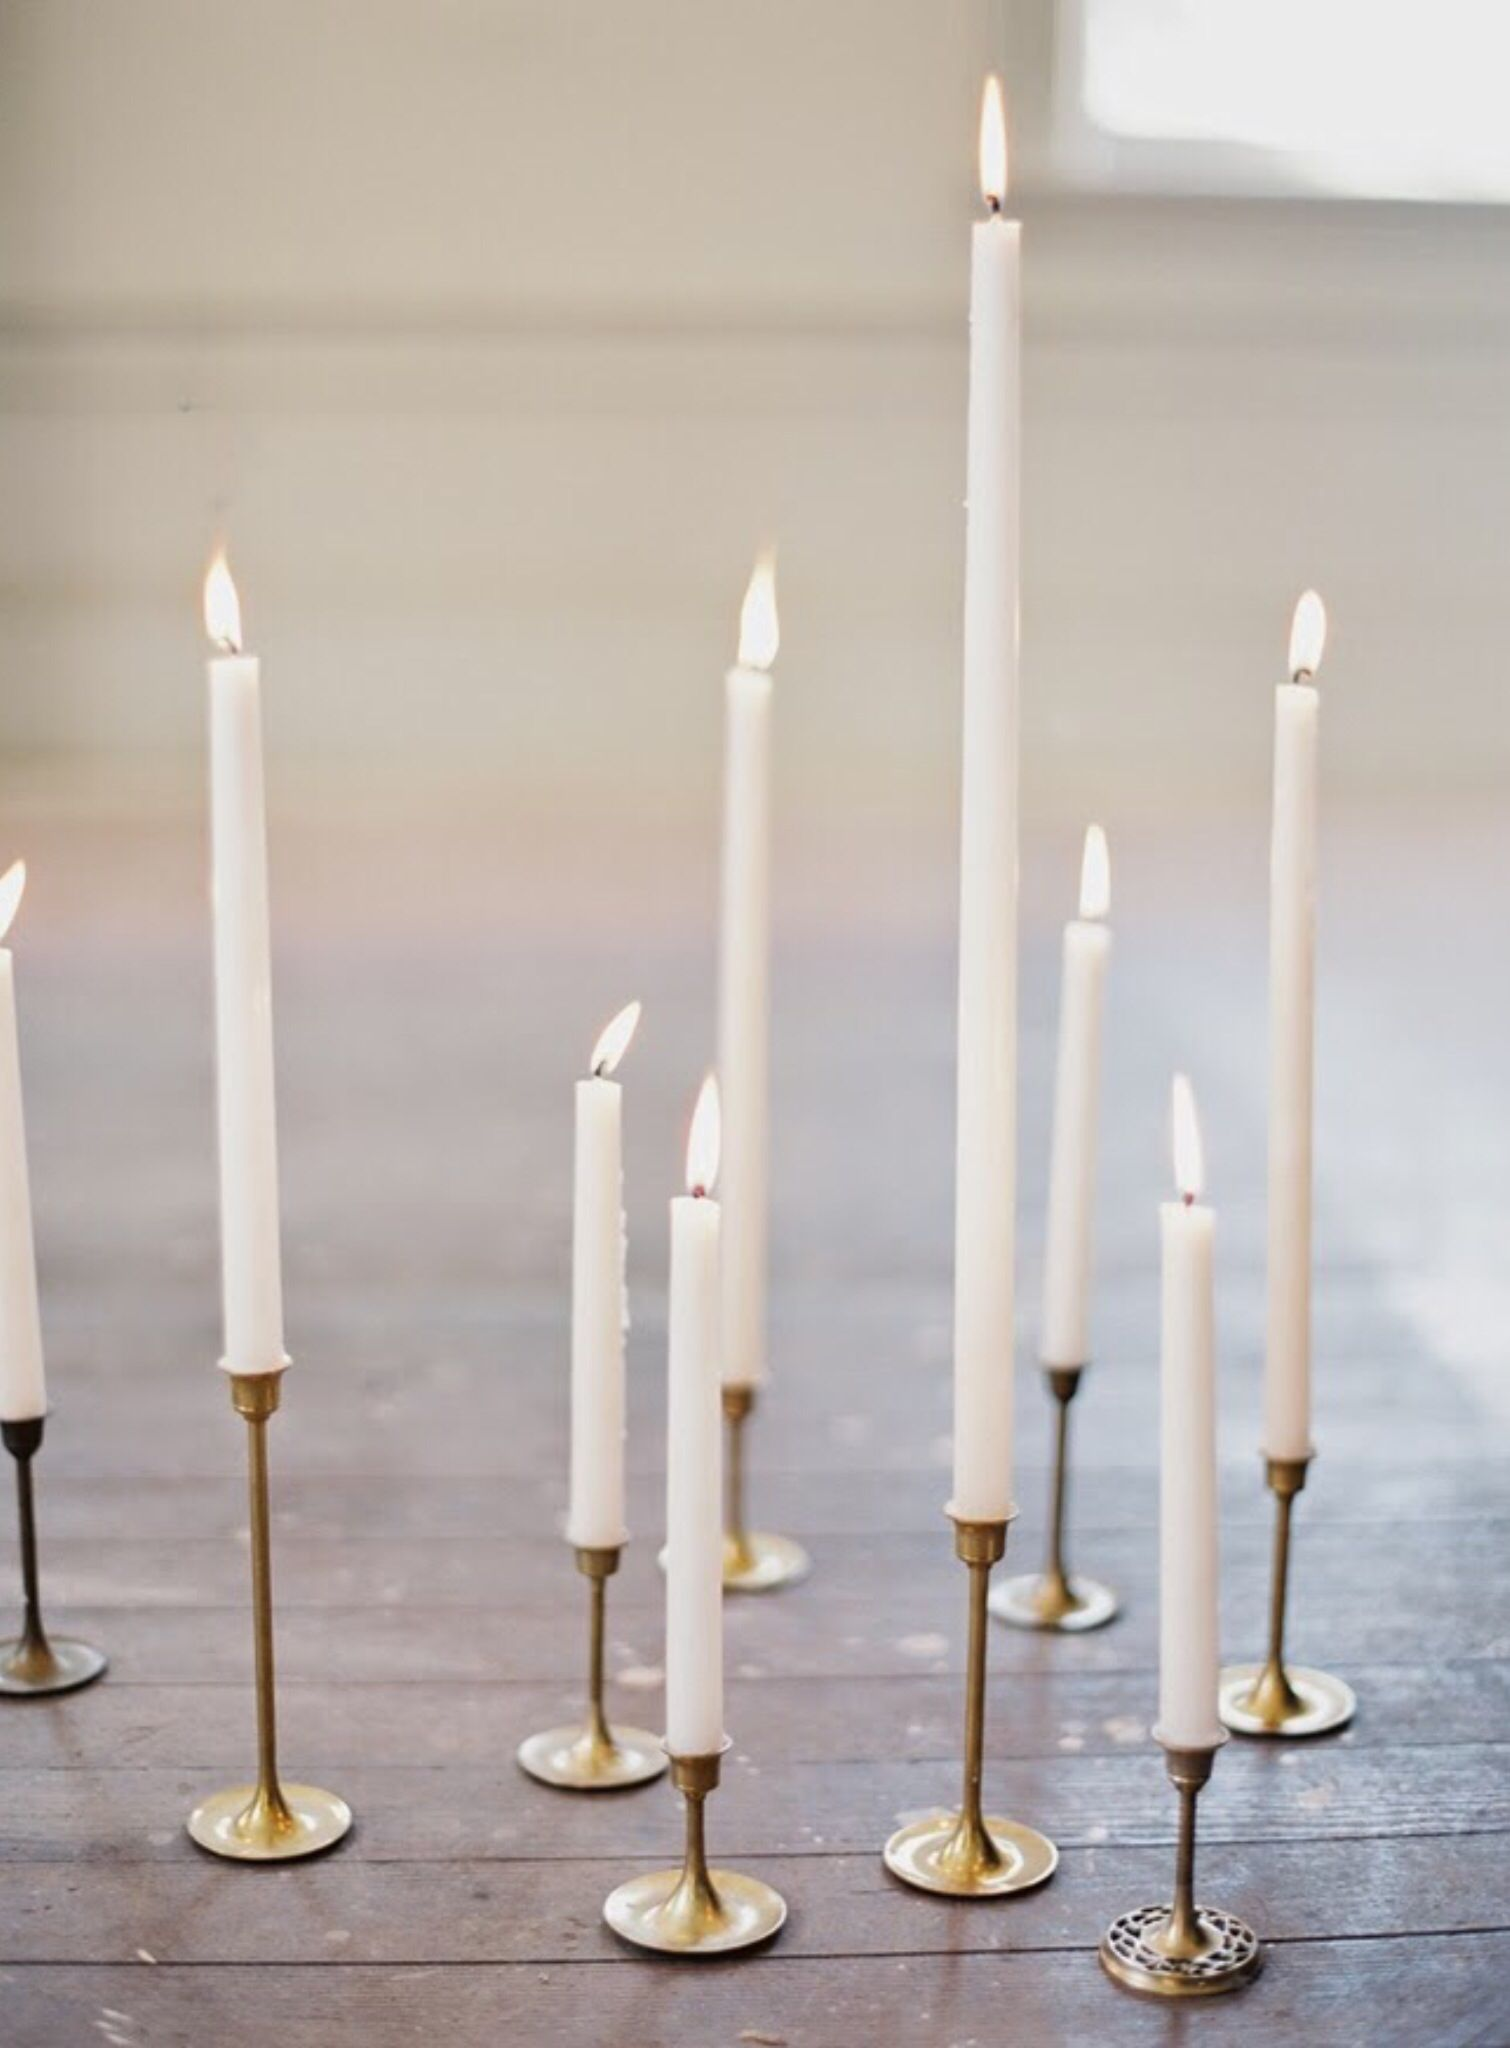 Pin By Cassandra Flannery On Christmas Decor Candles White Candles Home